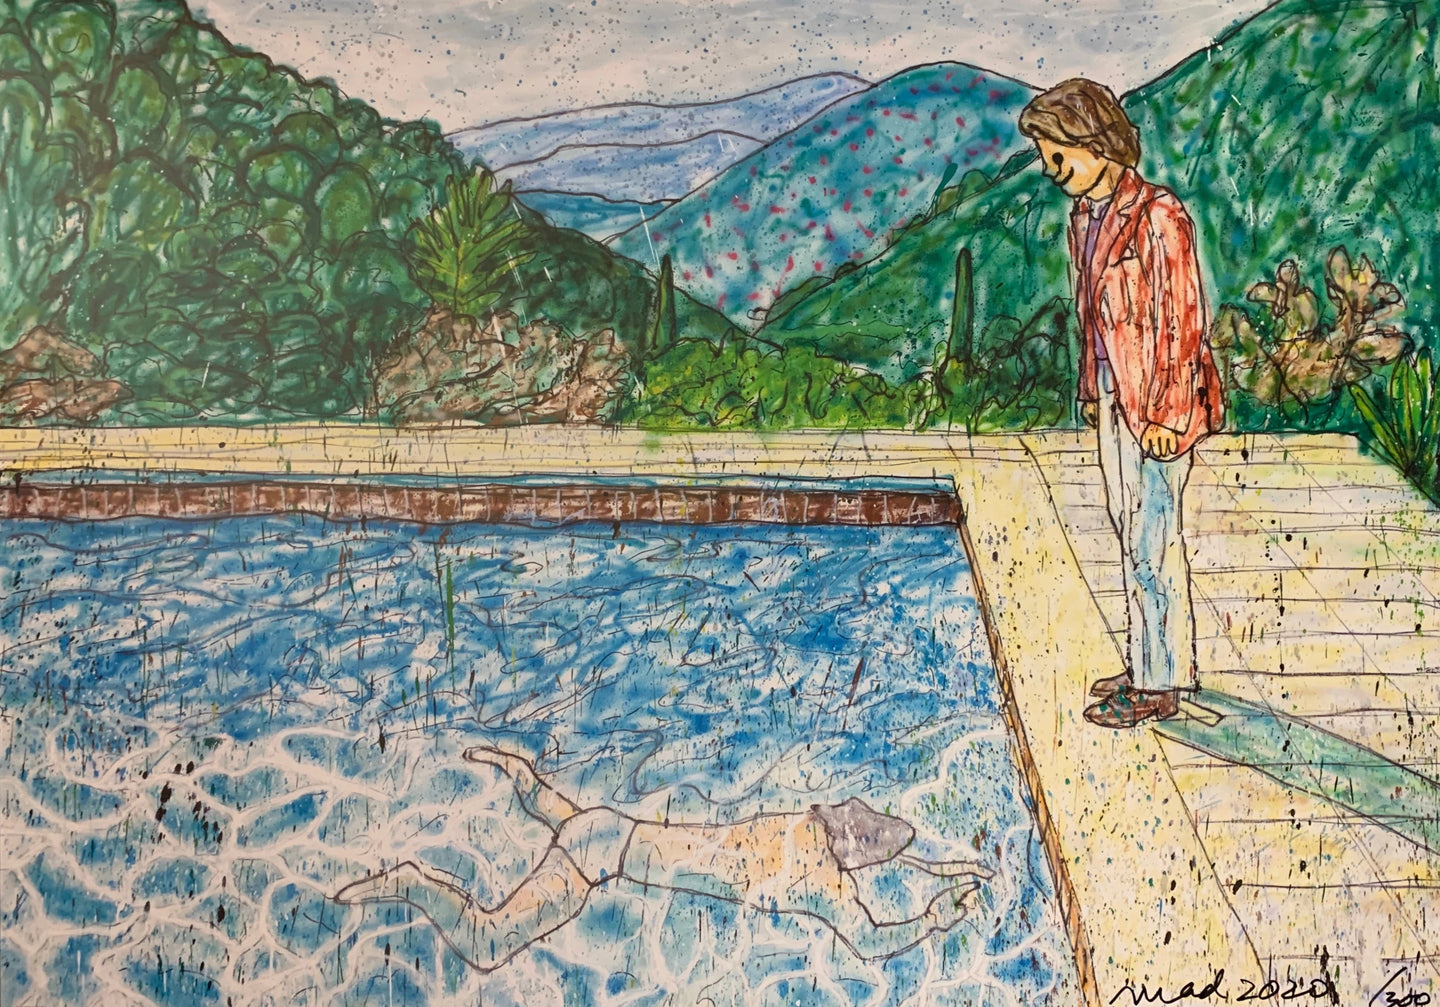 Portrait of an Artist (Pool with Two Figures) Ⅱ (inspired by David Hockney)